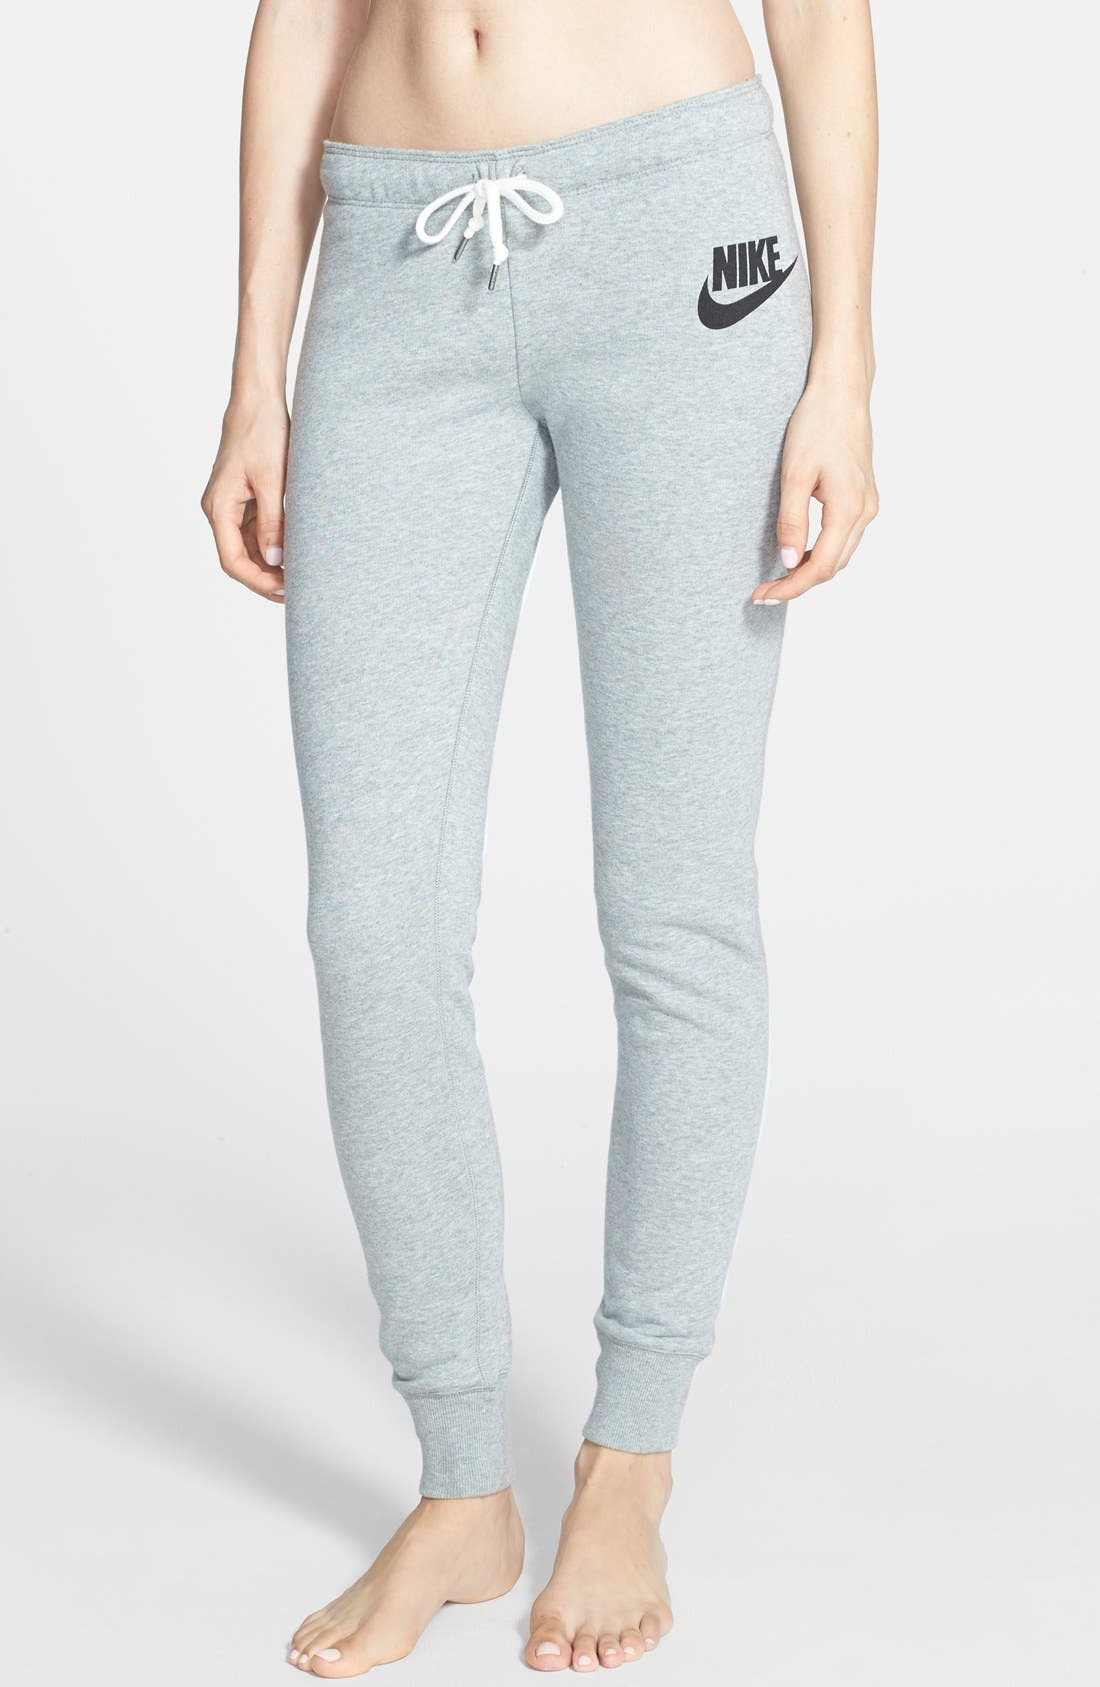 Alternate Image 1 Selected - Nike 'Rally' Tight French Terry Sweatpants